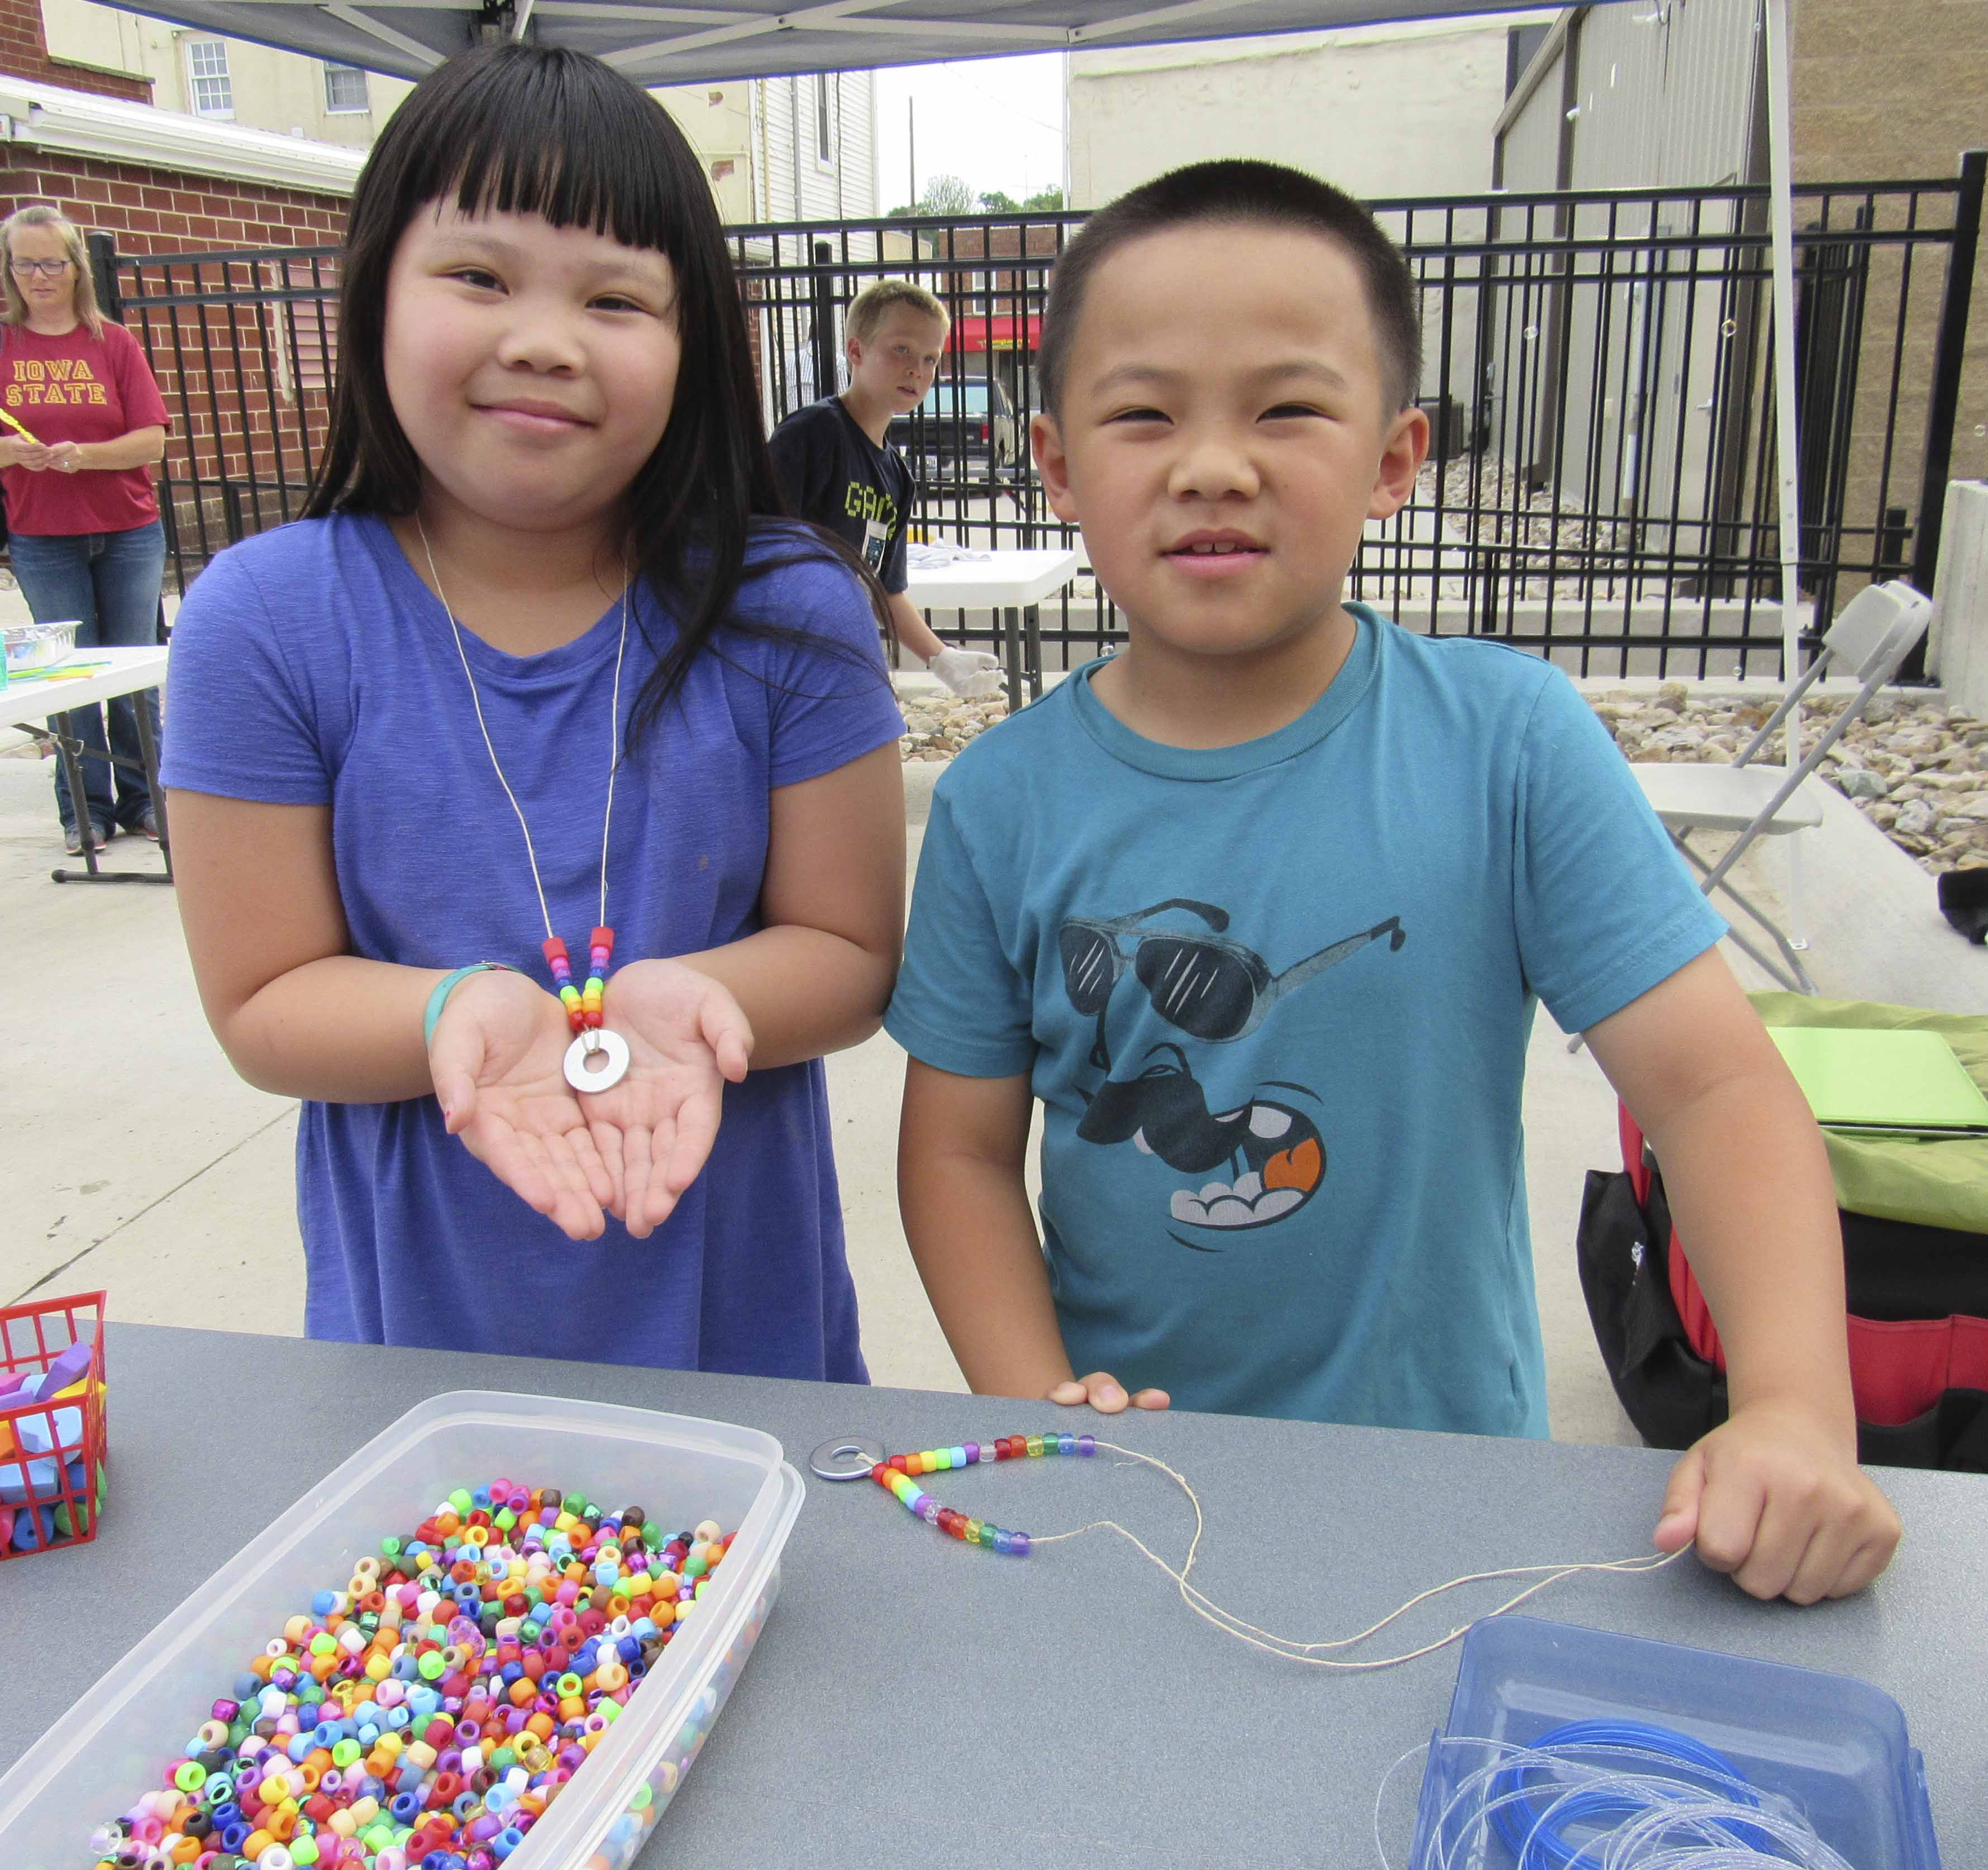 Bonnie and Ethan Tran of Monticello show off their washer and bead necklaces they made at Uptown Thursday Night. The crafts were courtesy of the Monticello Public Library.